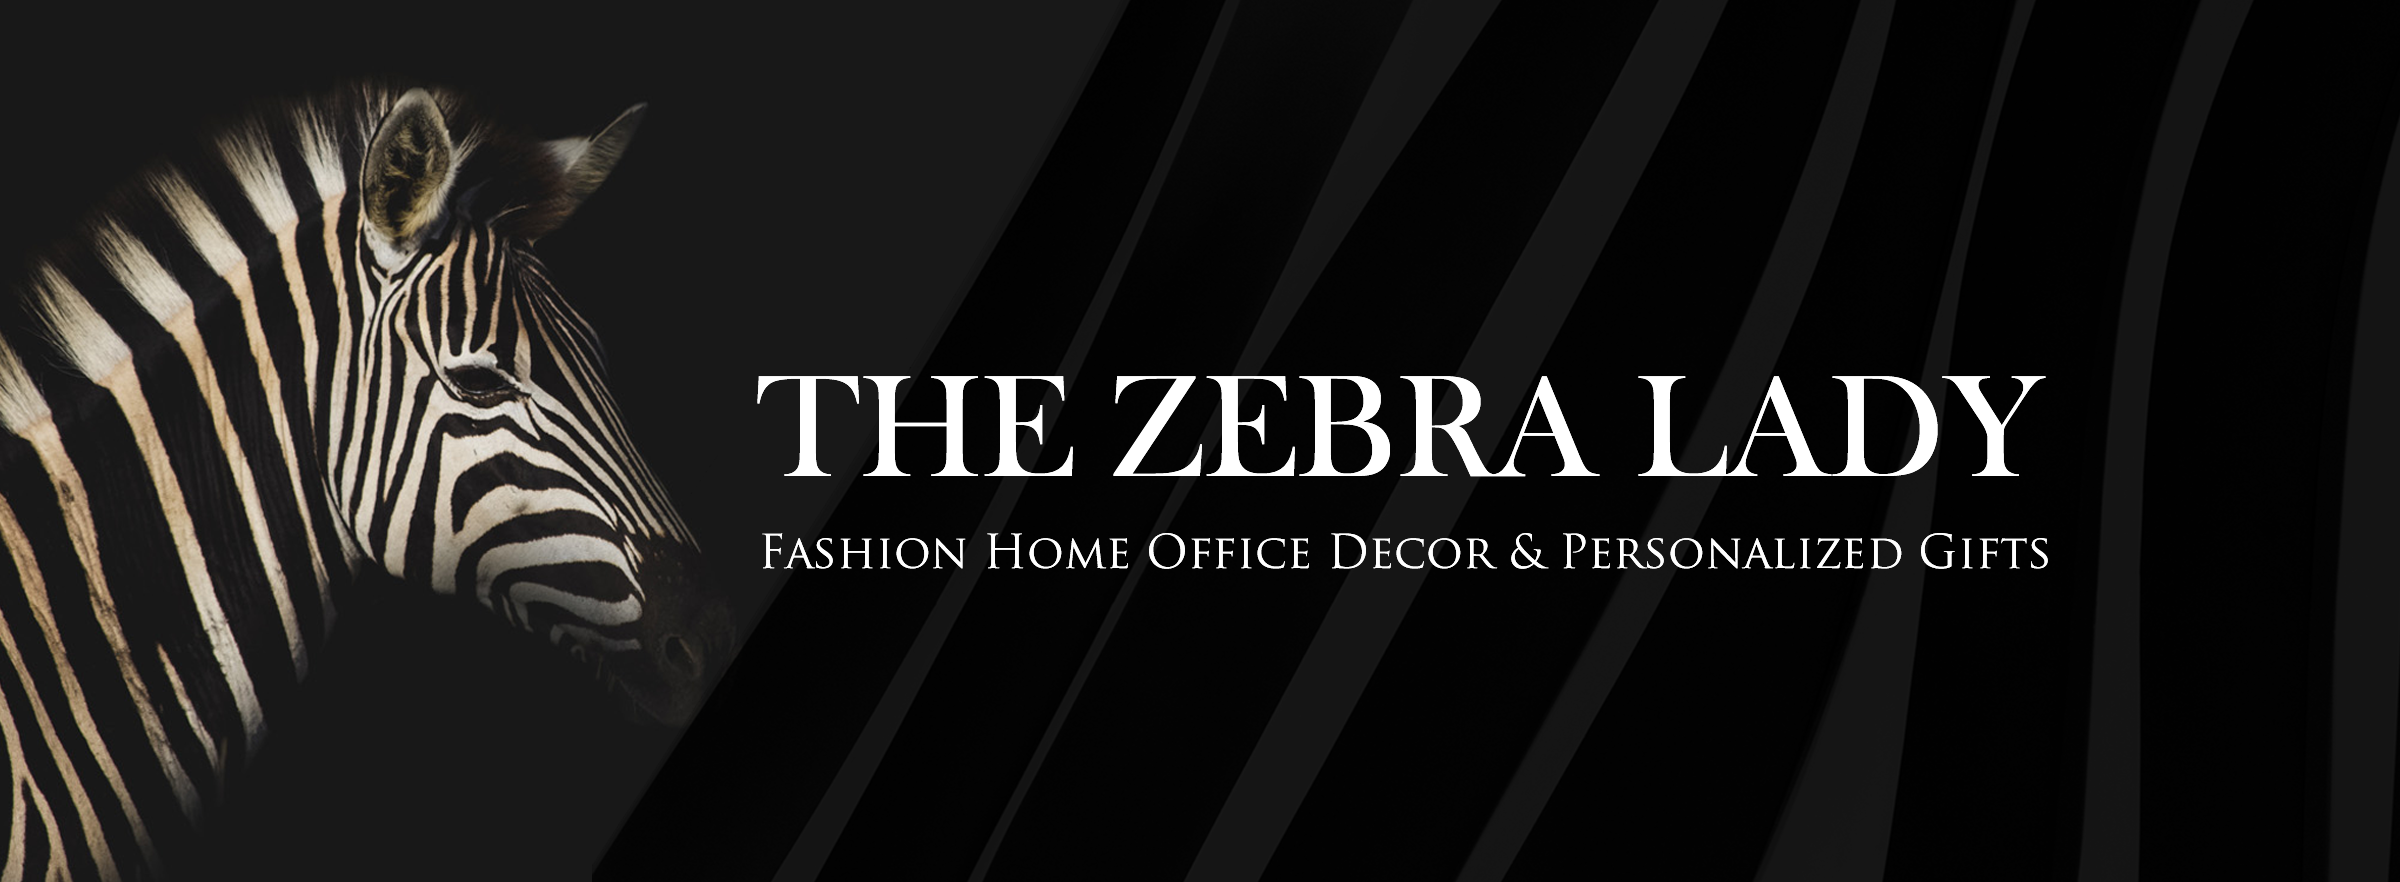 the zebra lady site banner slide 12 may 2019.png